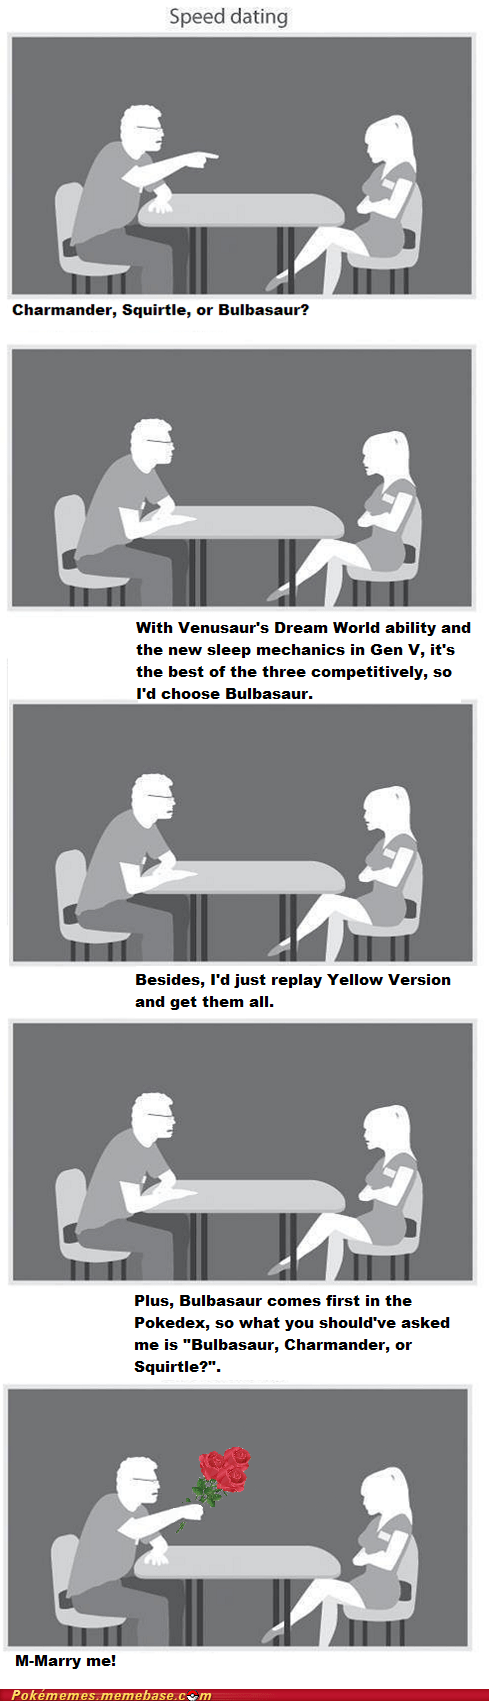 Dream about speed dating